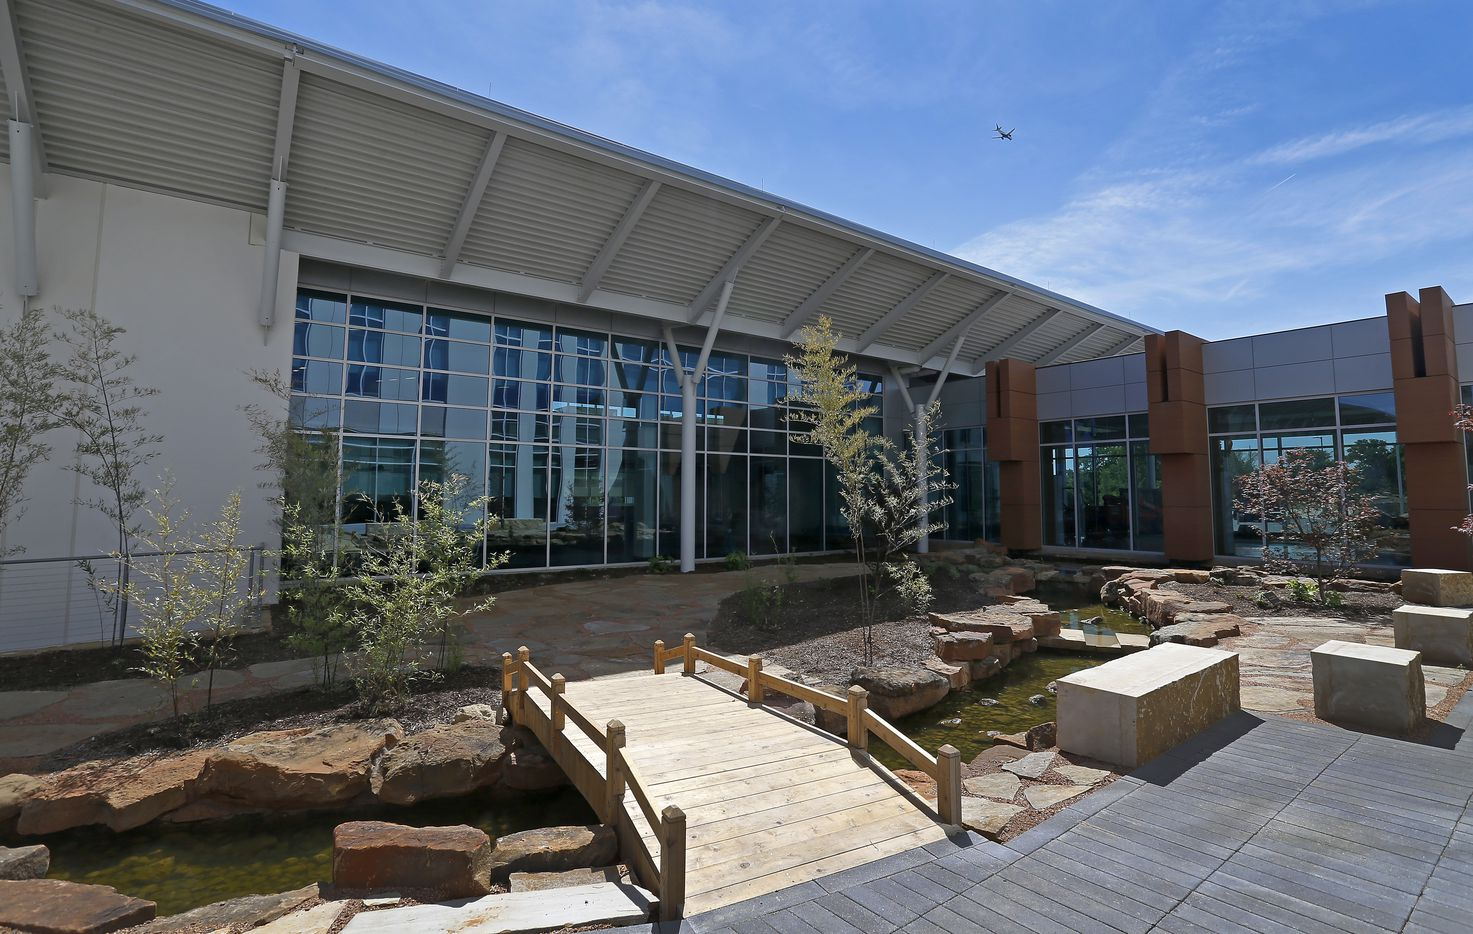 """The buildings feature a """"net zero"""" system for water use, which collects rainwater and uses it for irrigation as well as supplemental fortification of the stream between the Research and Development building and office buildings at the new Kubota Tractor Corp. headquarters in Grapevine."""